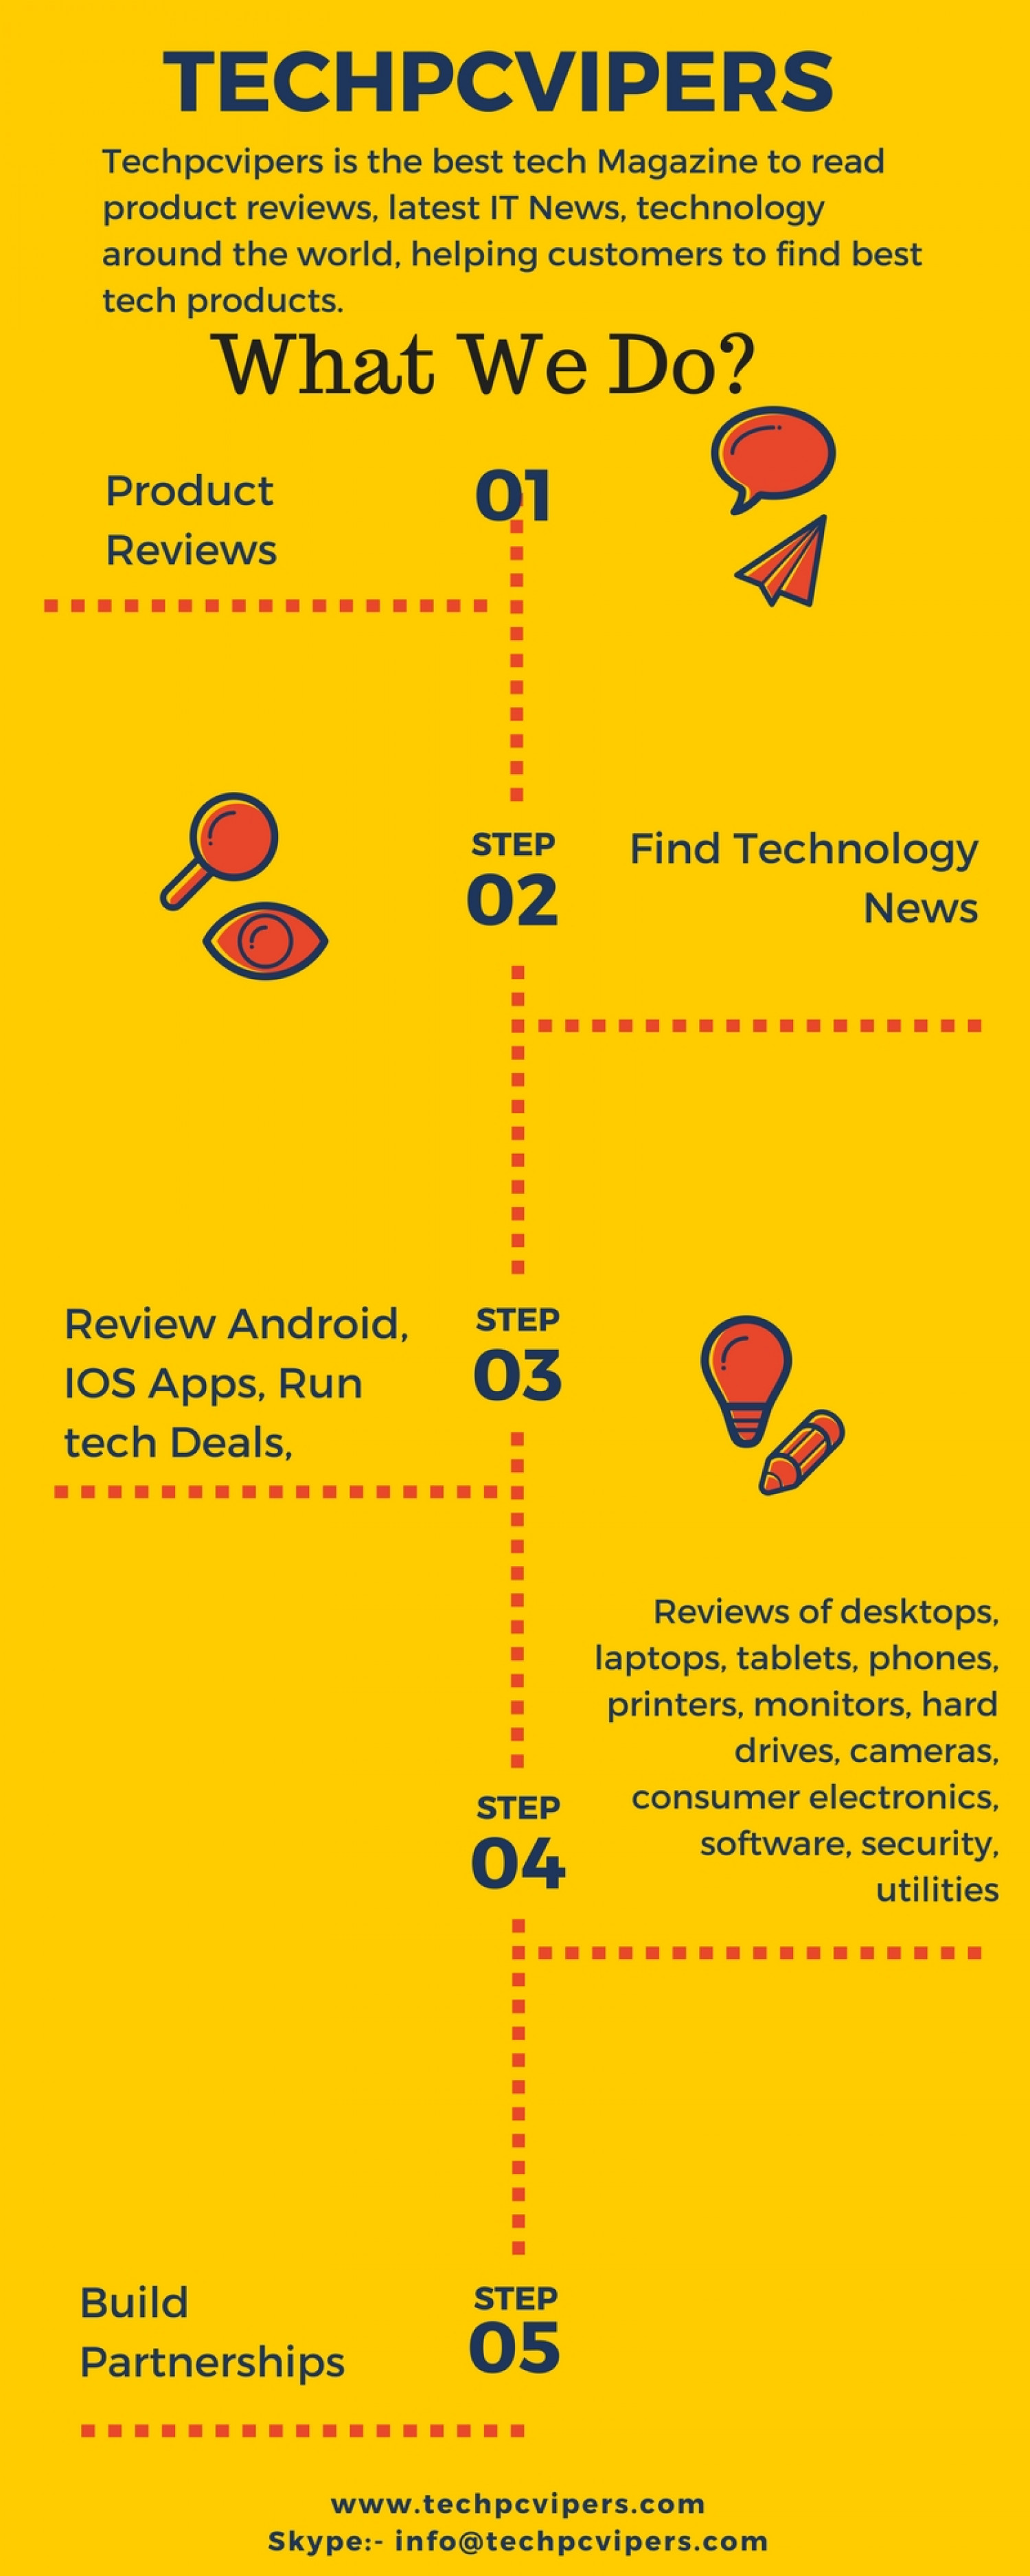 TechPcVipers - Best Tech Magazine Infographic